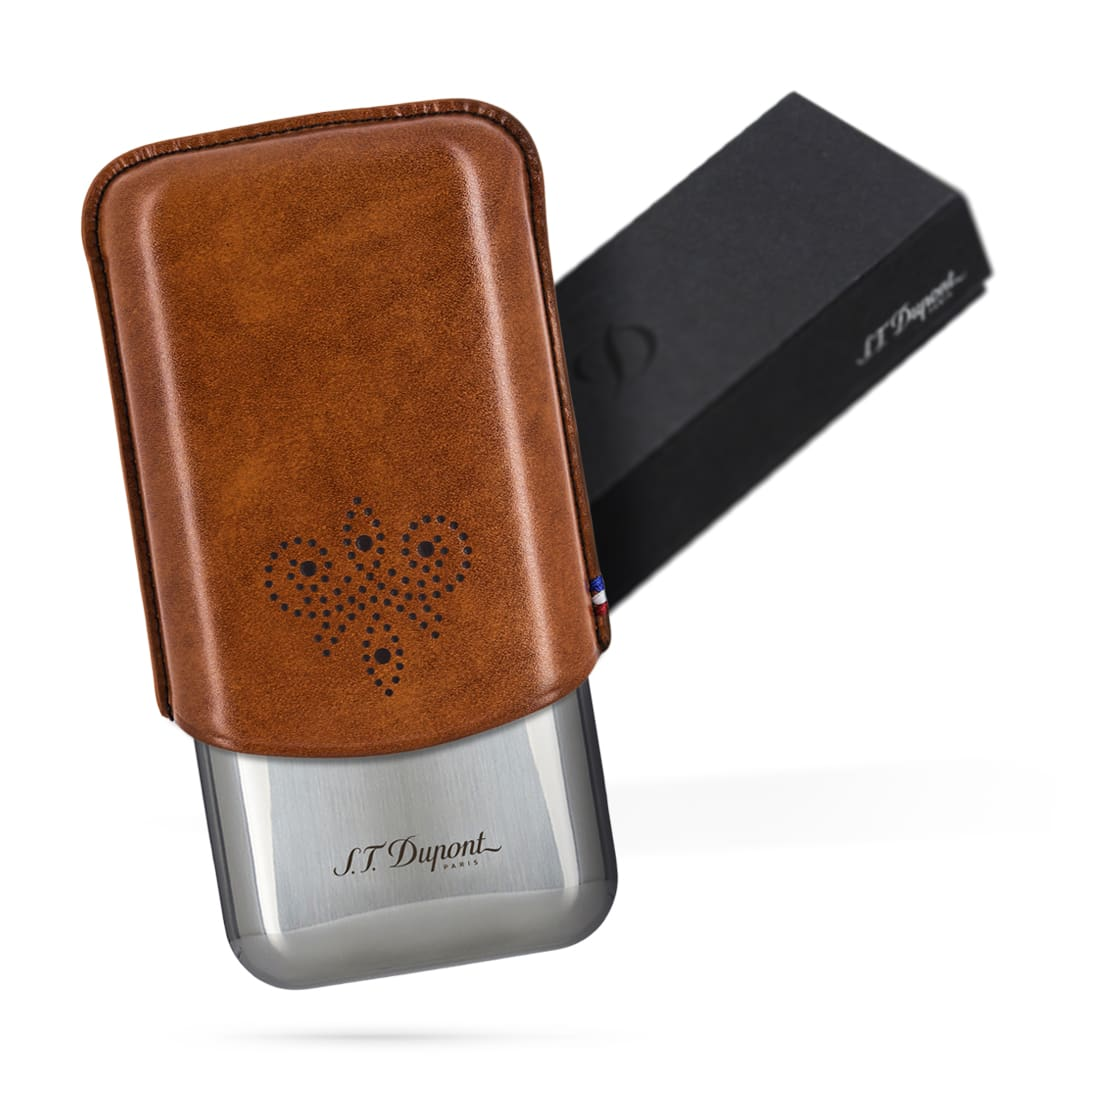 Photo #3 de Etui Cigare S.T. Dupont 3 Cigares Derby Marron